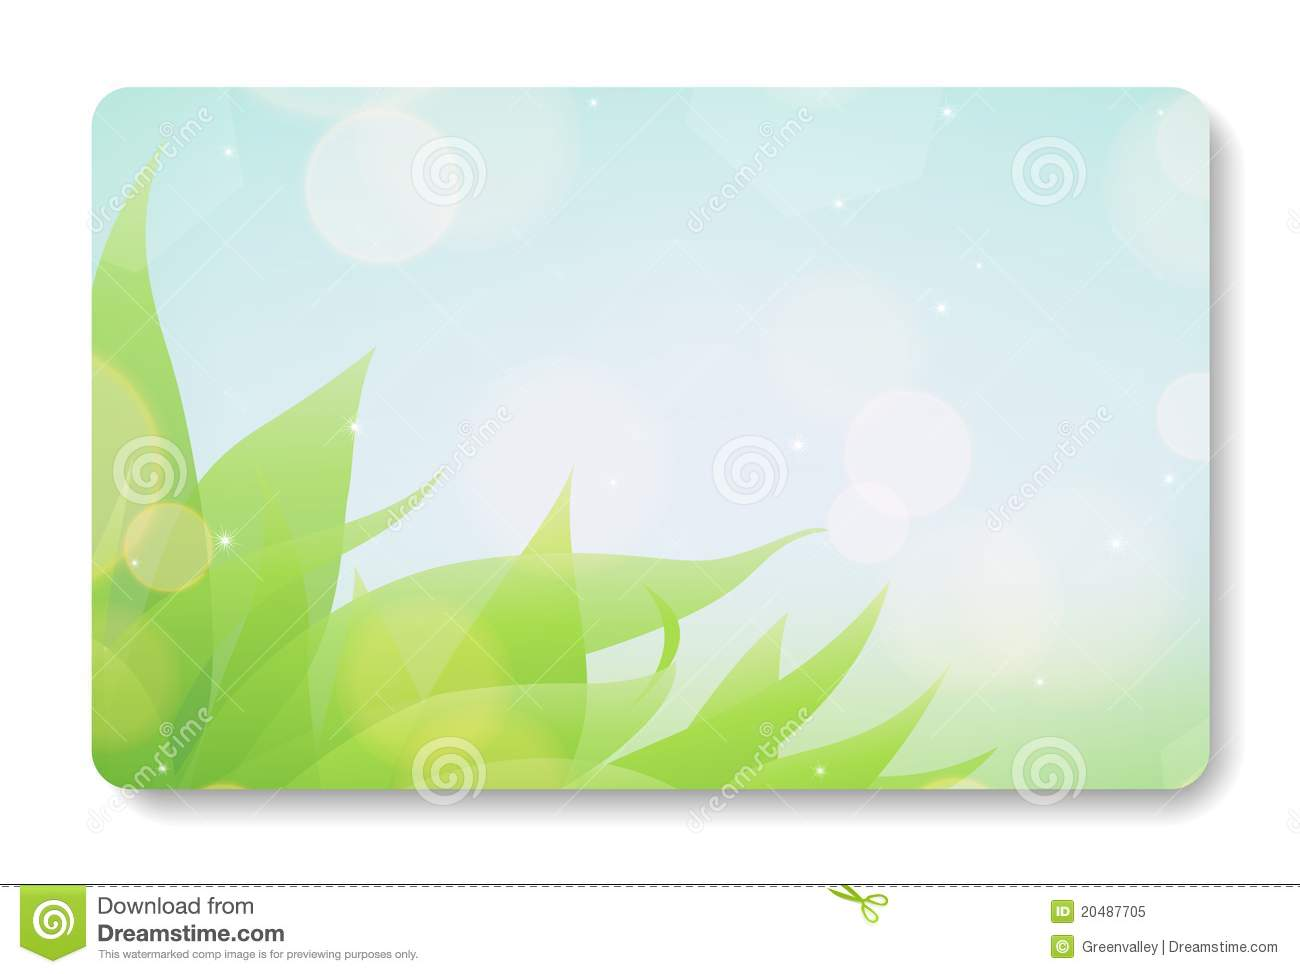 Business Card Background Stock Image - Image: 20487701